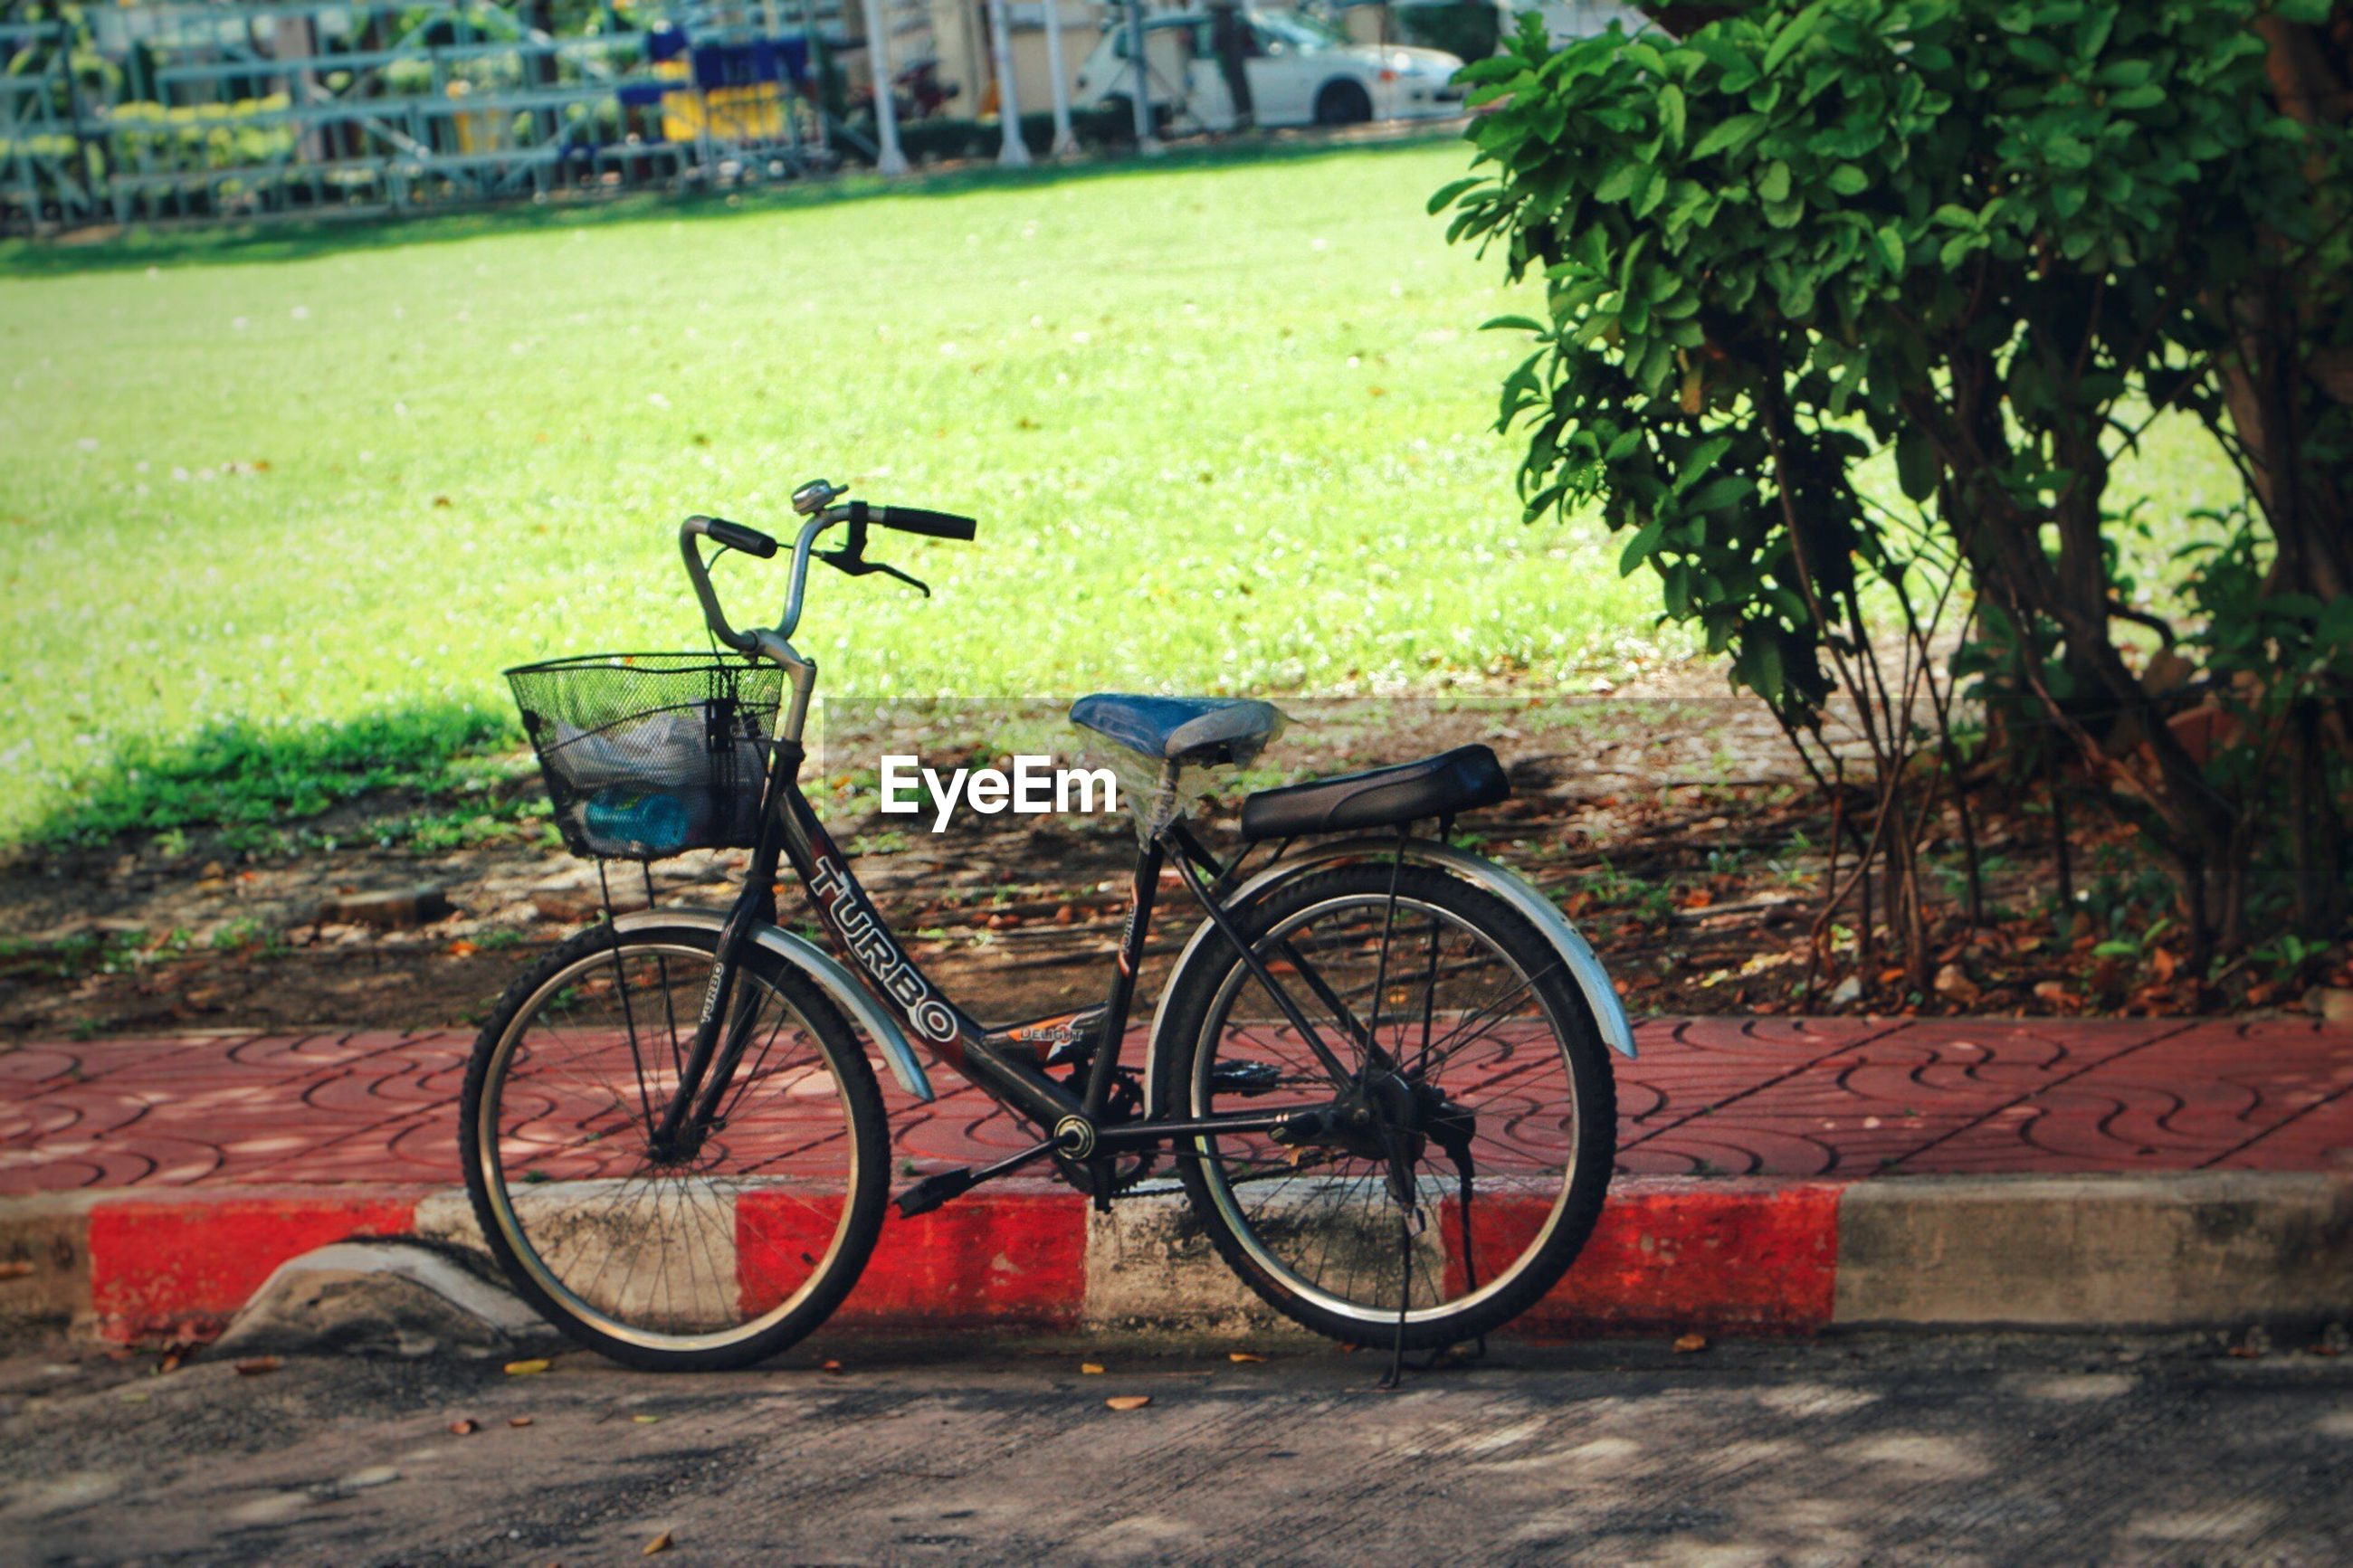 bicycle, mode of transport, transportation, land vehicle, stationary, parking, outdoors, tree, no people, bicycle basket, bicycle rack, grass, day, nature, handlebar